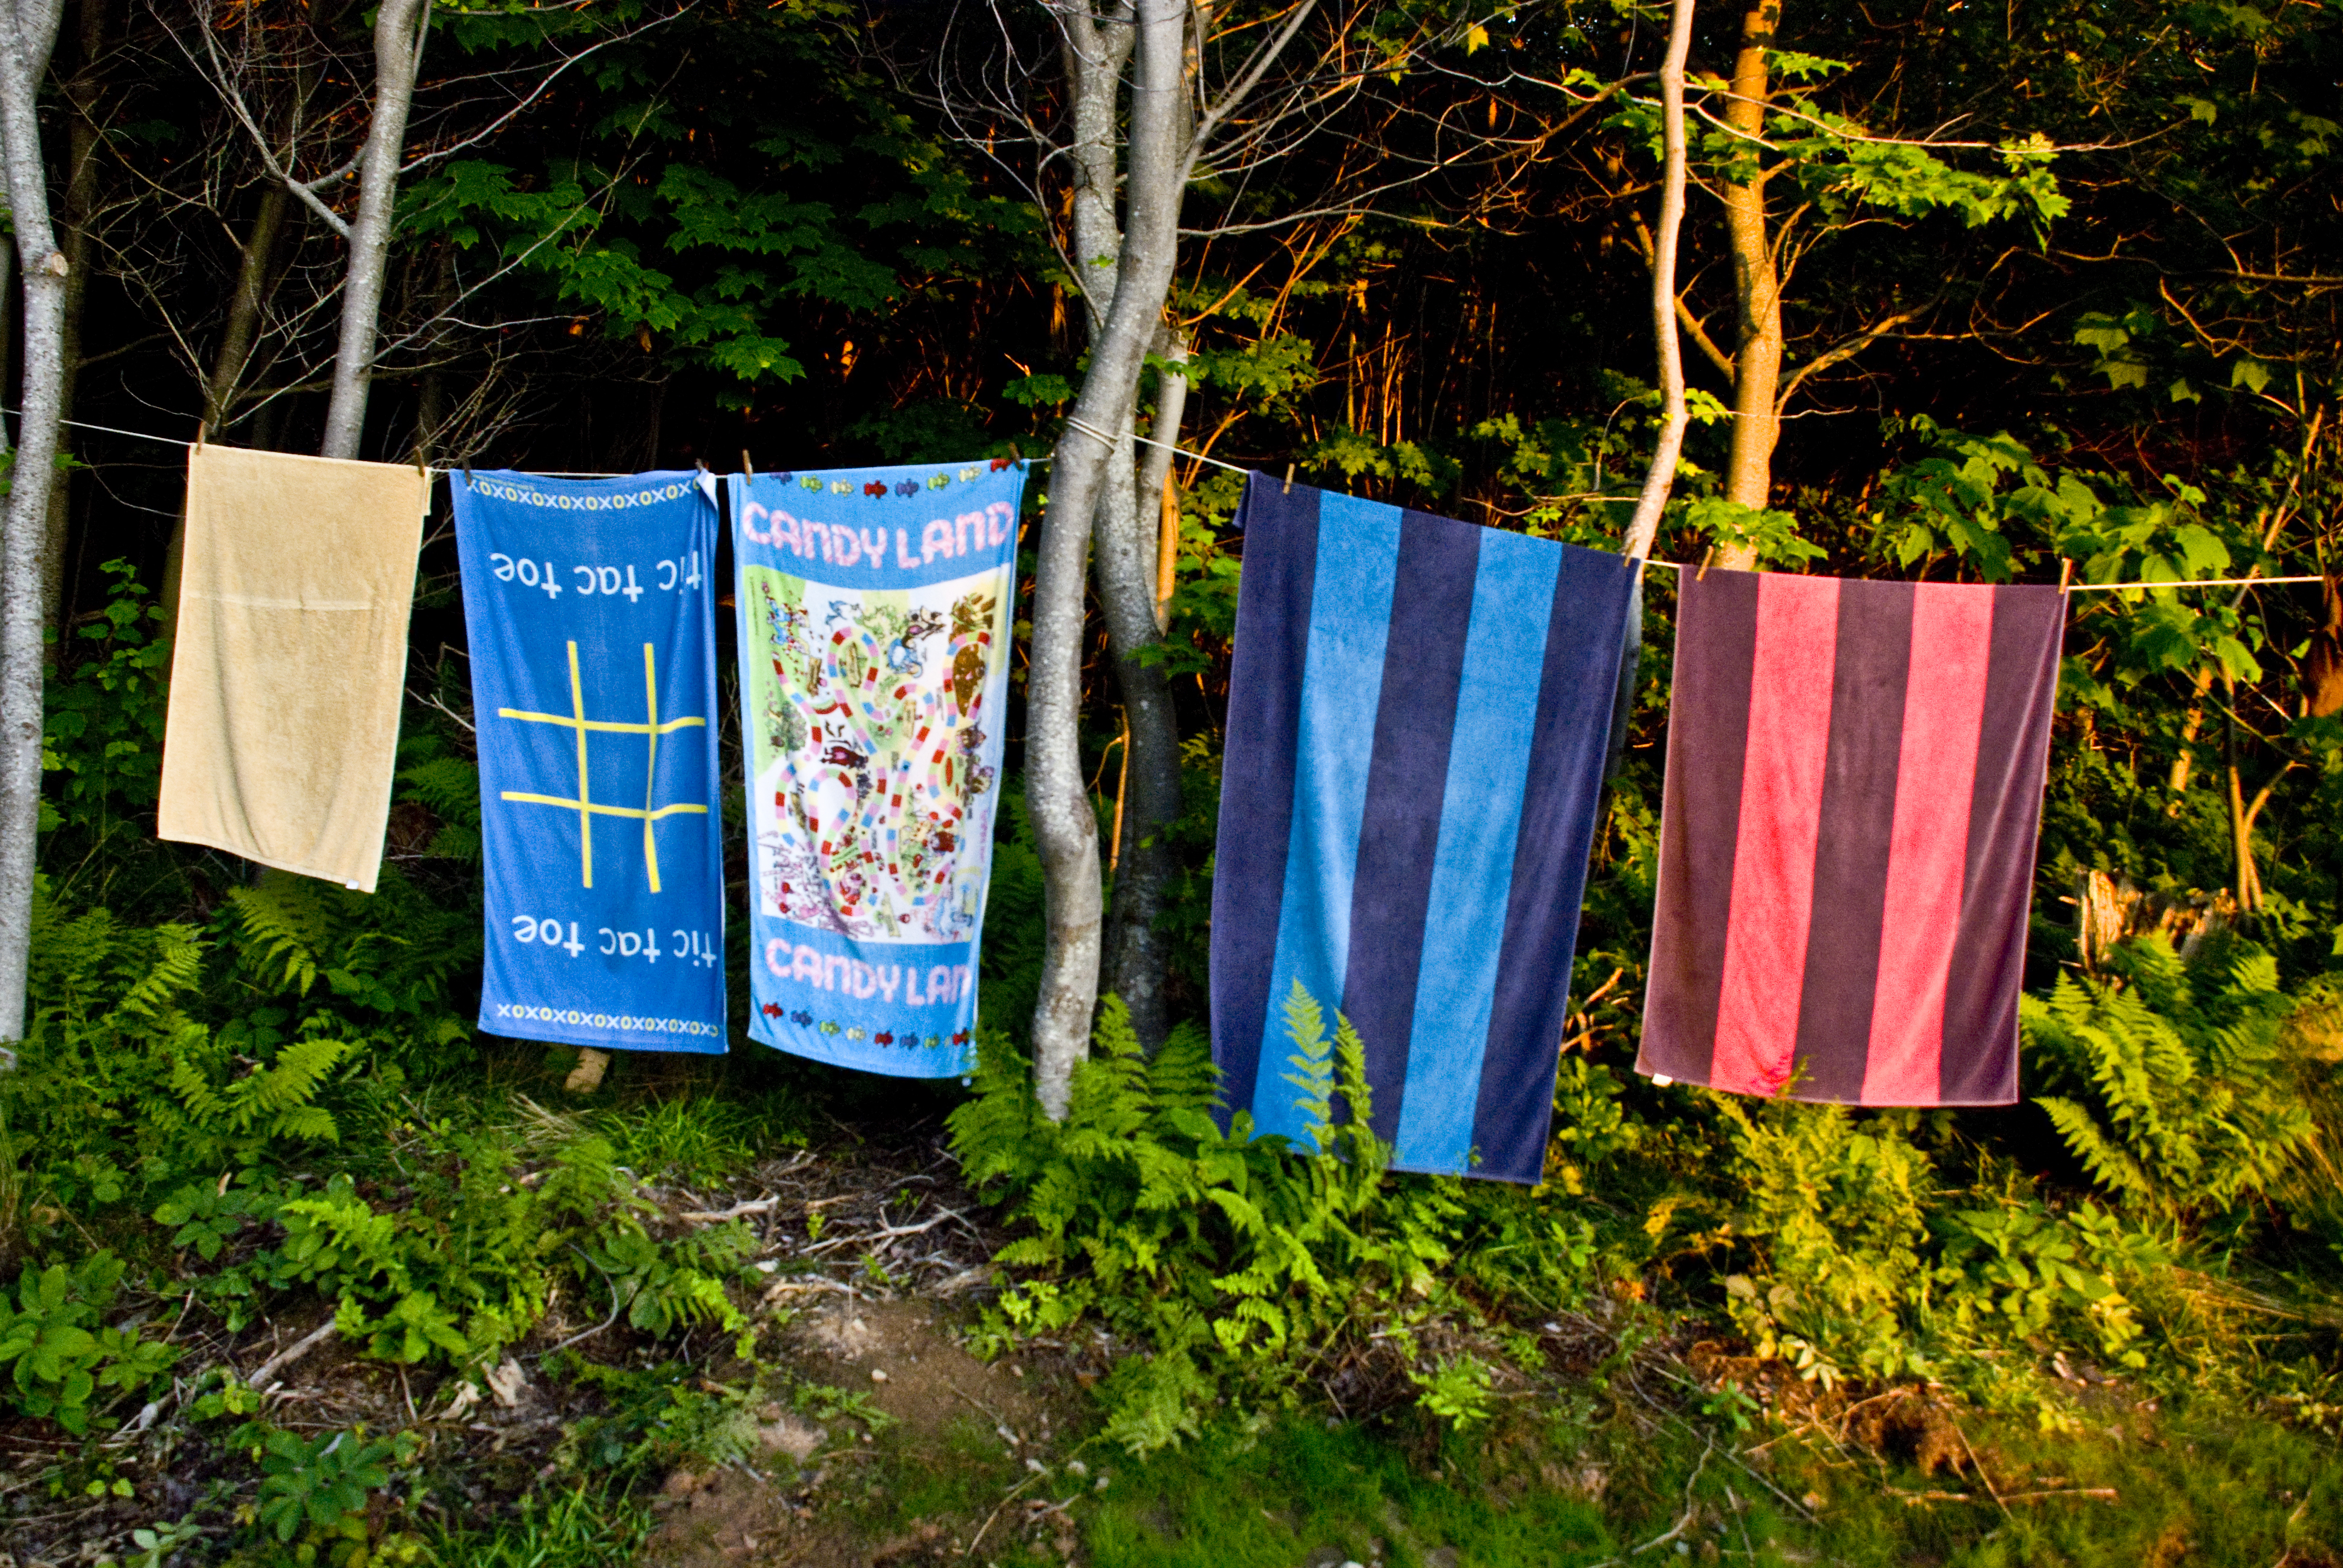 TOWELS DRYING, deepbluesea